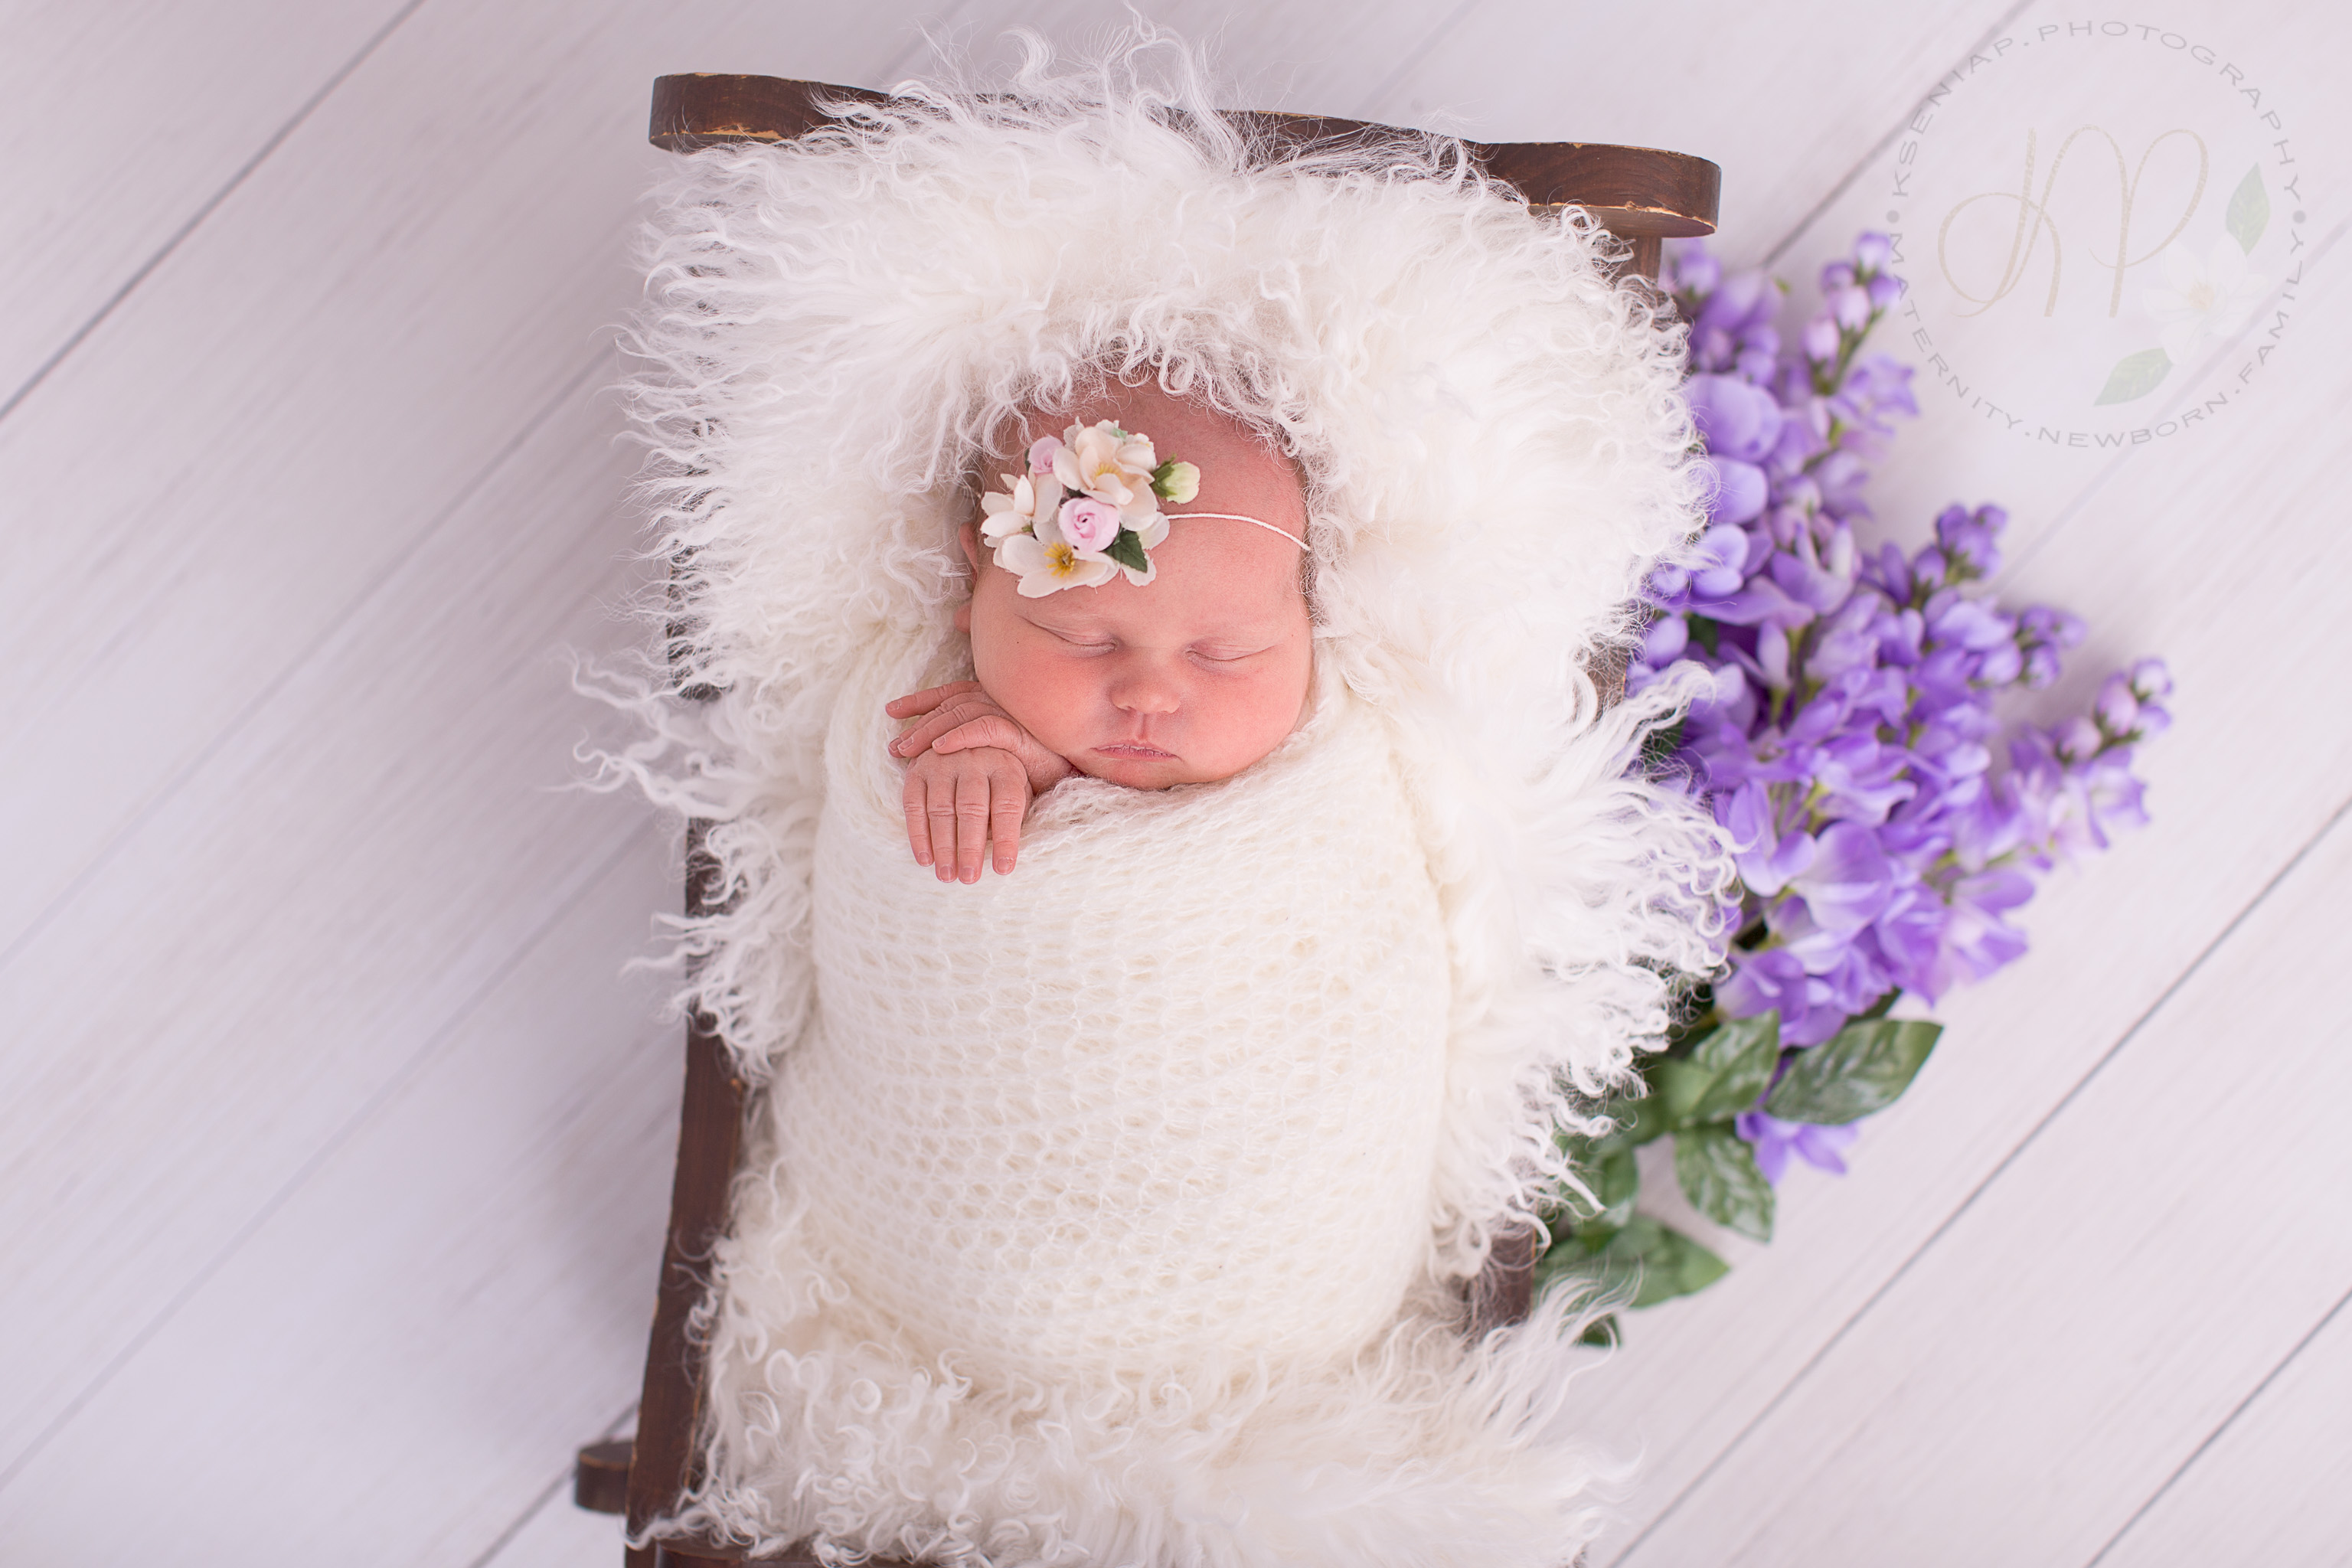 Image of newborn baby wrapped in white fabric asleep